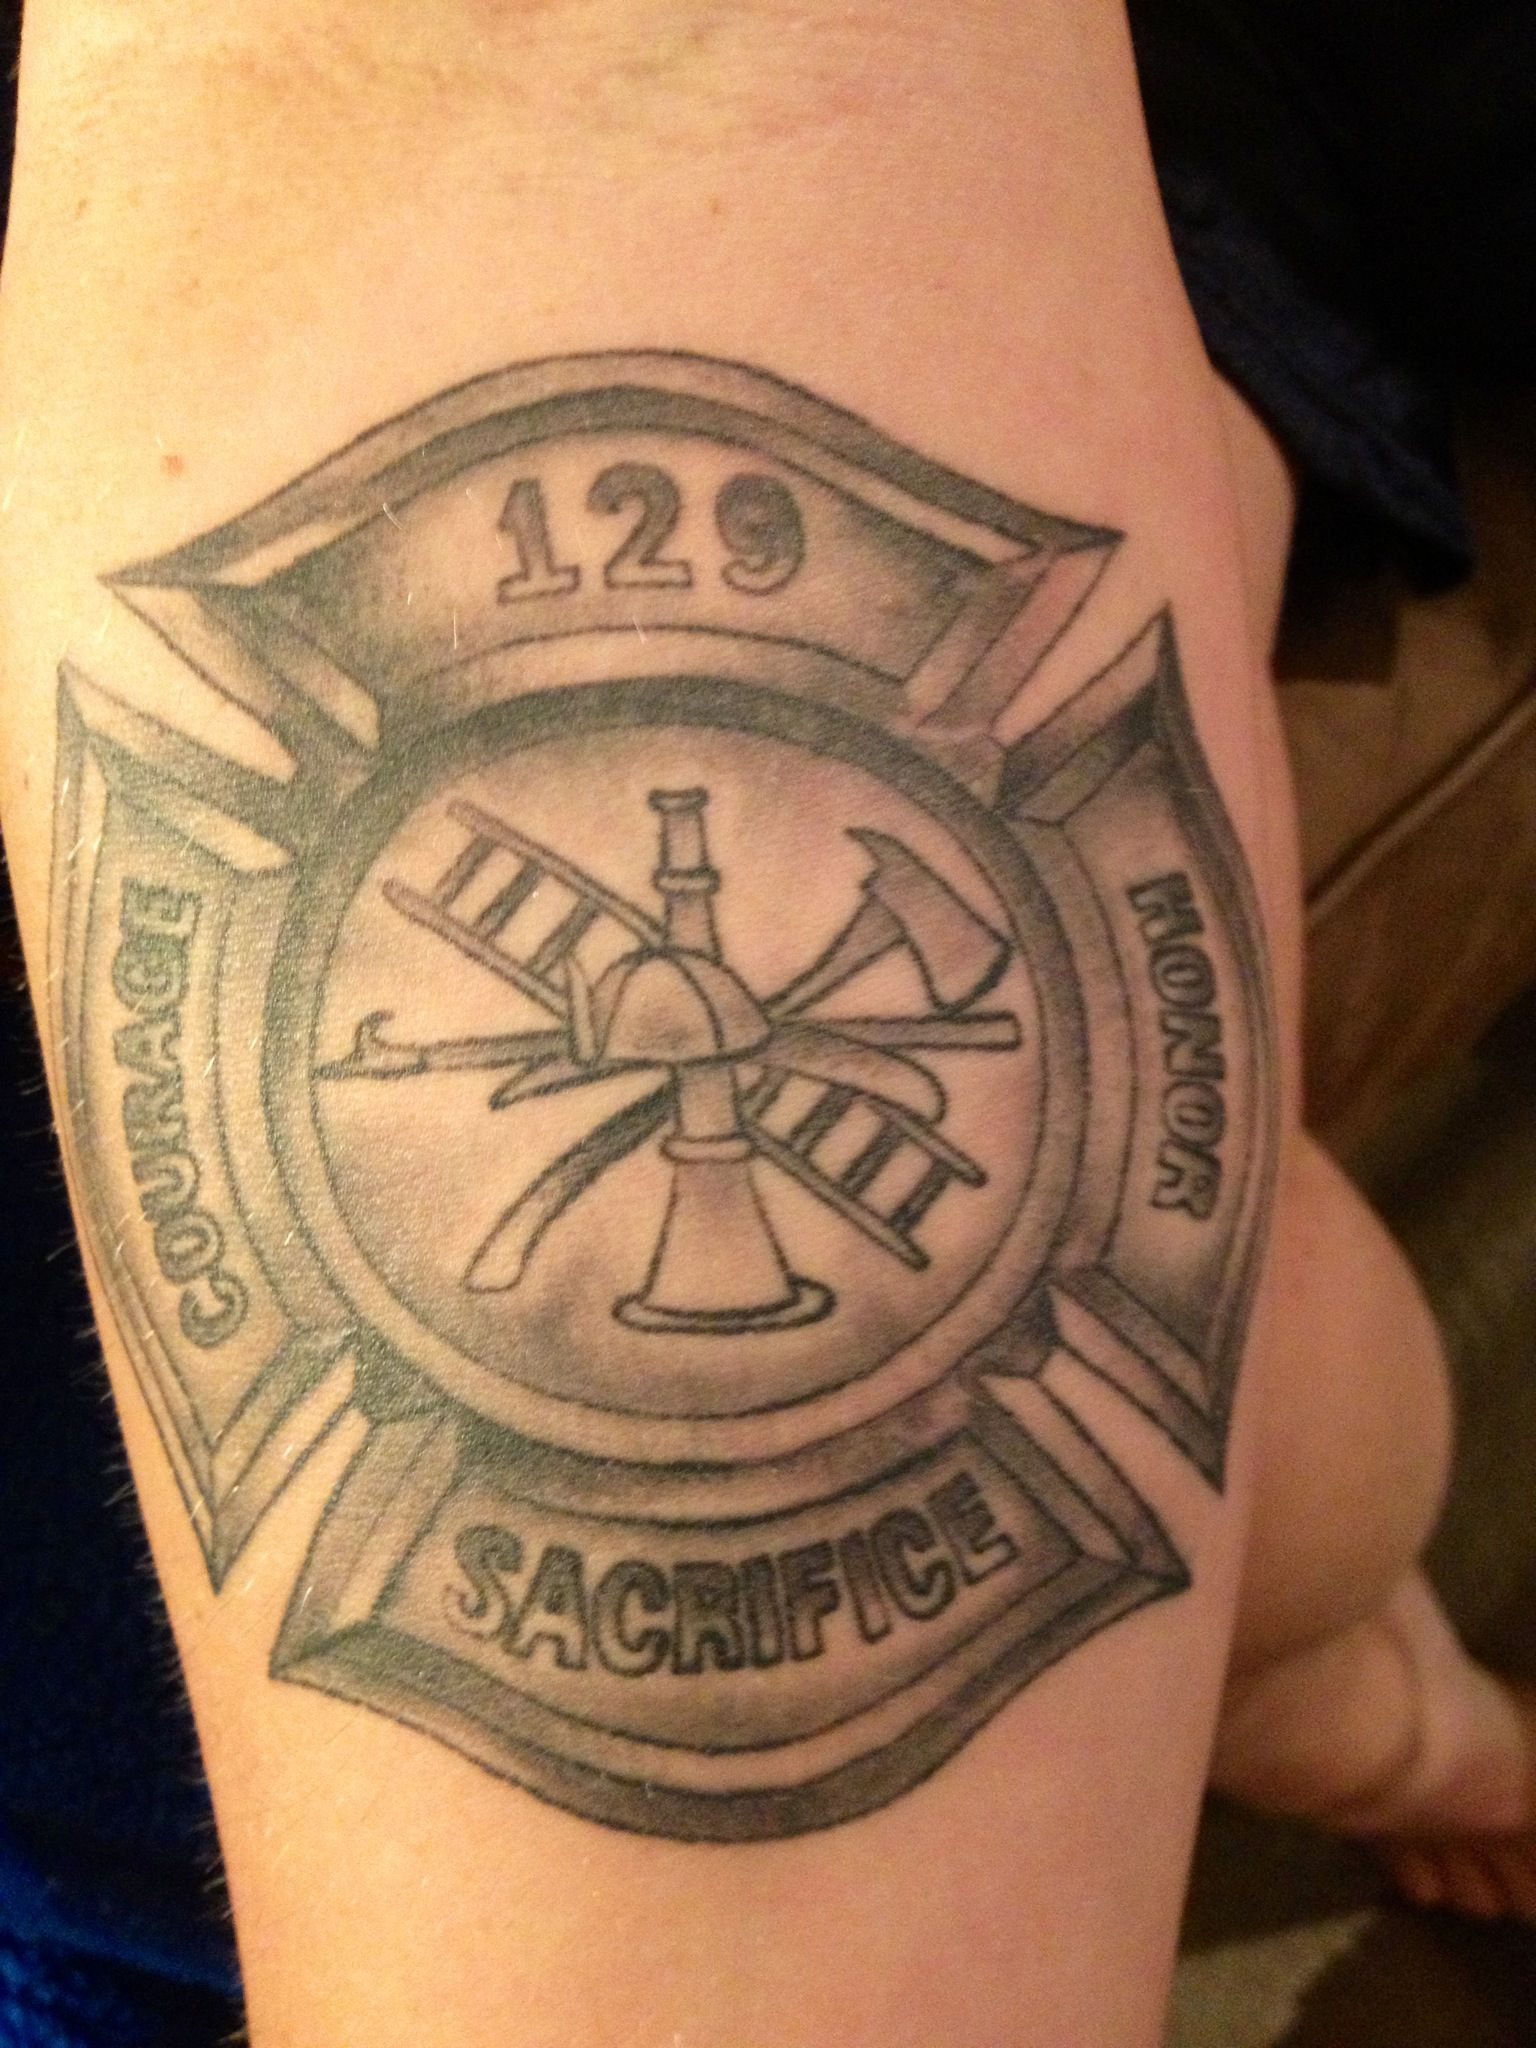 c5335b448 Maltese cross tattoo, right forearm done by twizted images ...